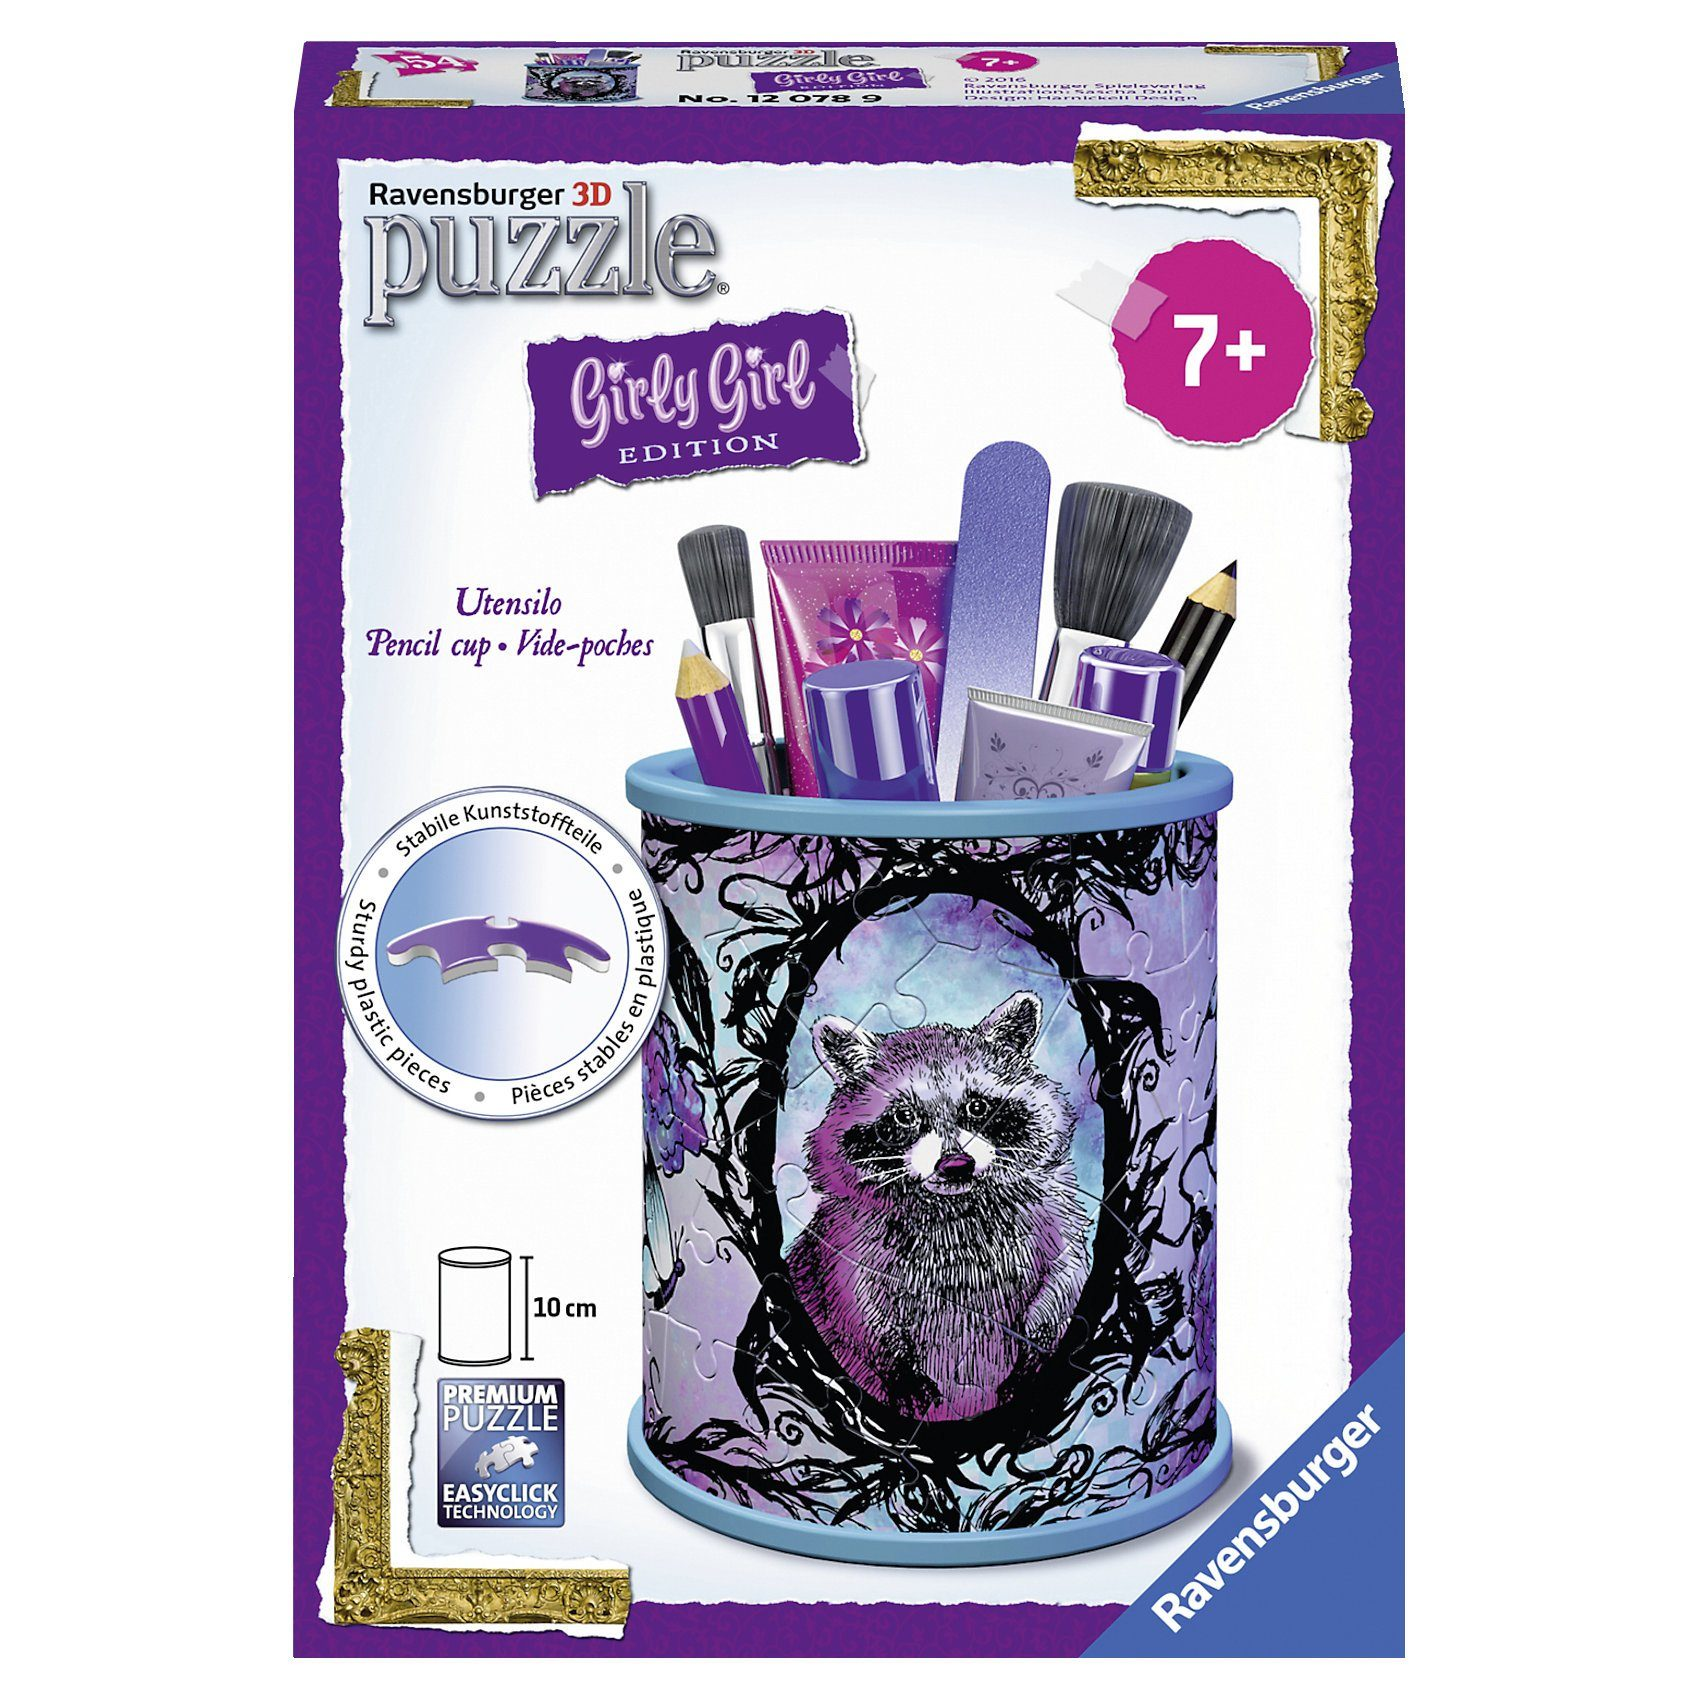 Ravensburger Girly Girl Edition - Utensilo Animal Trend